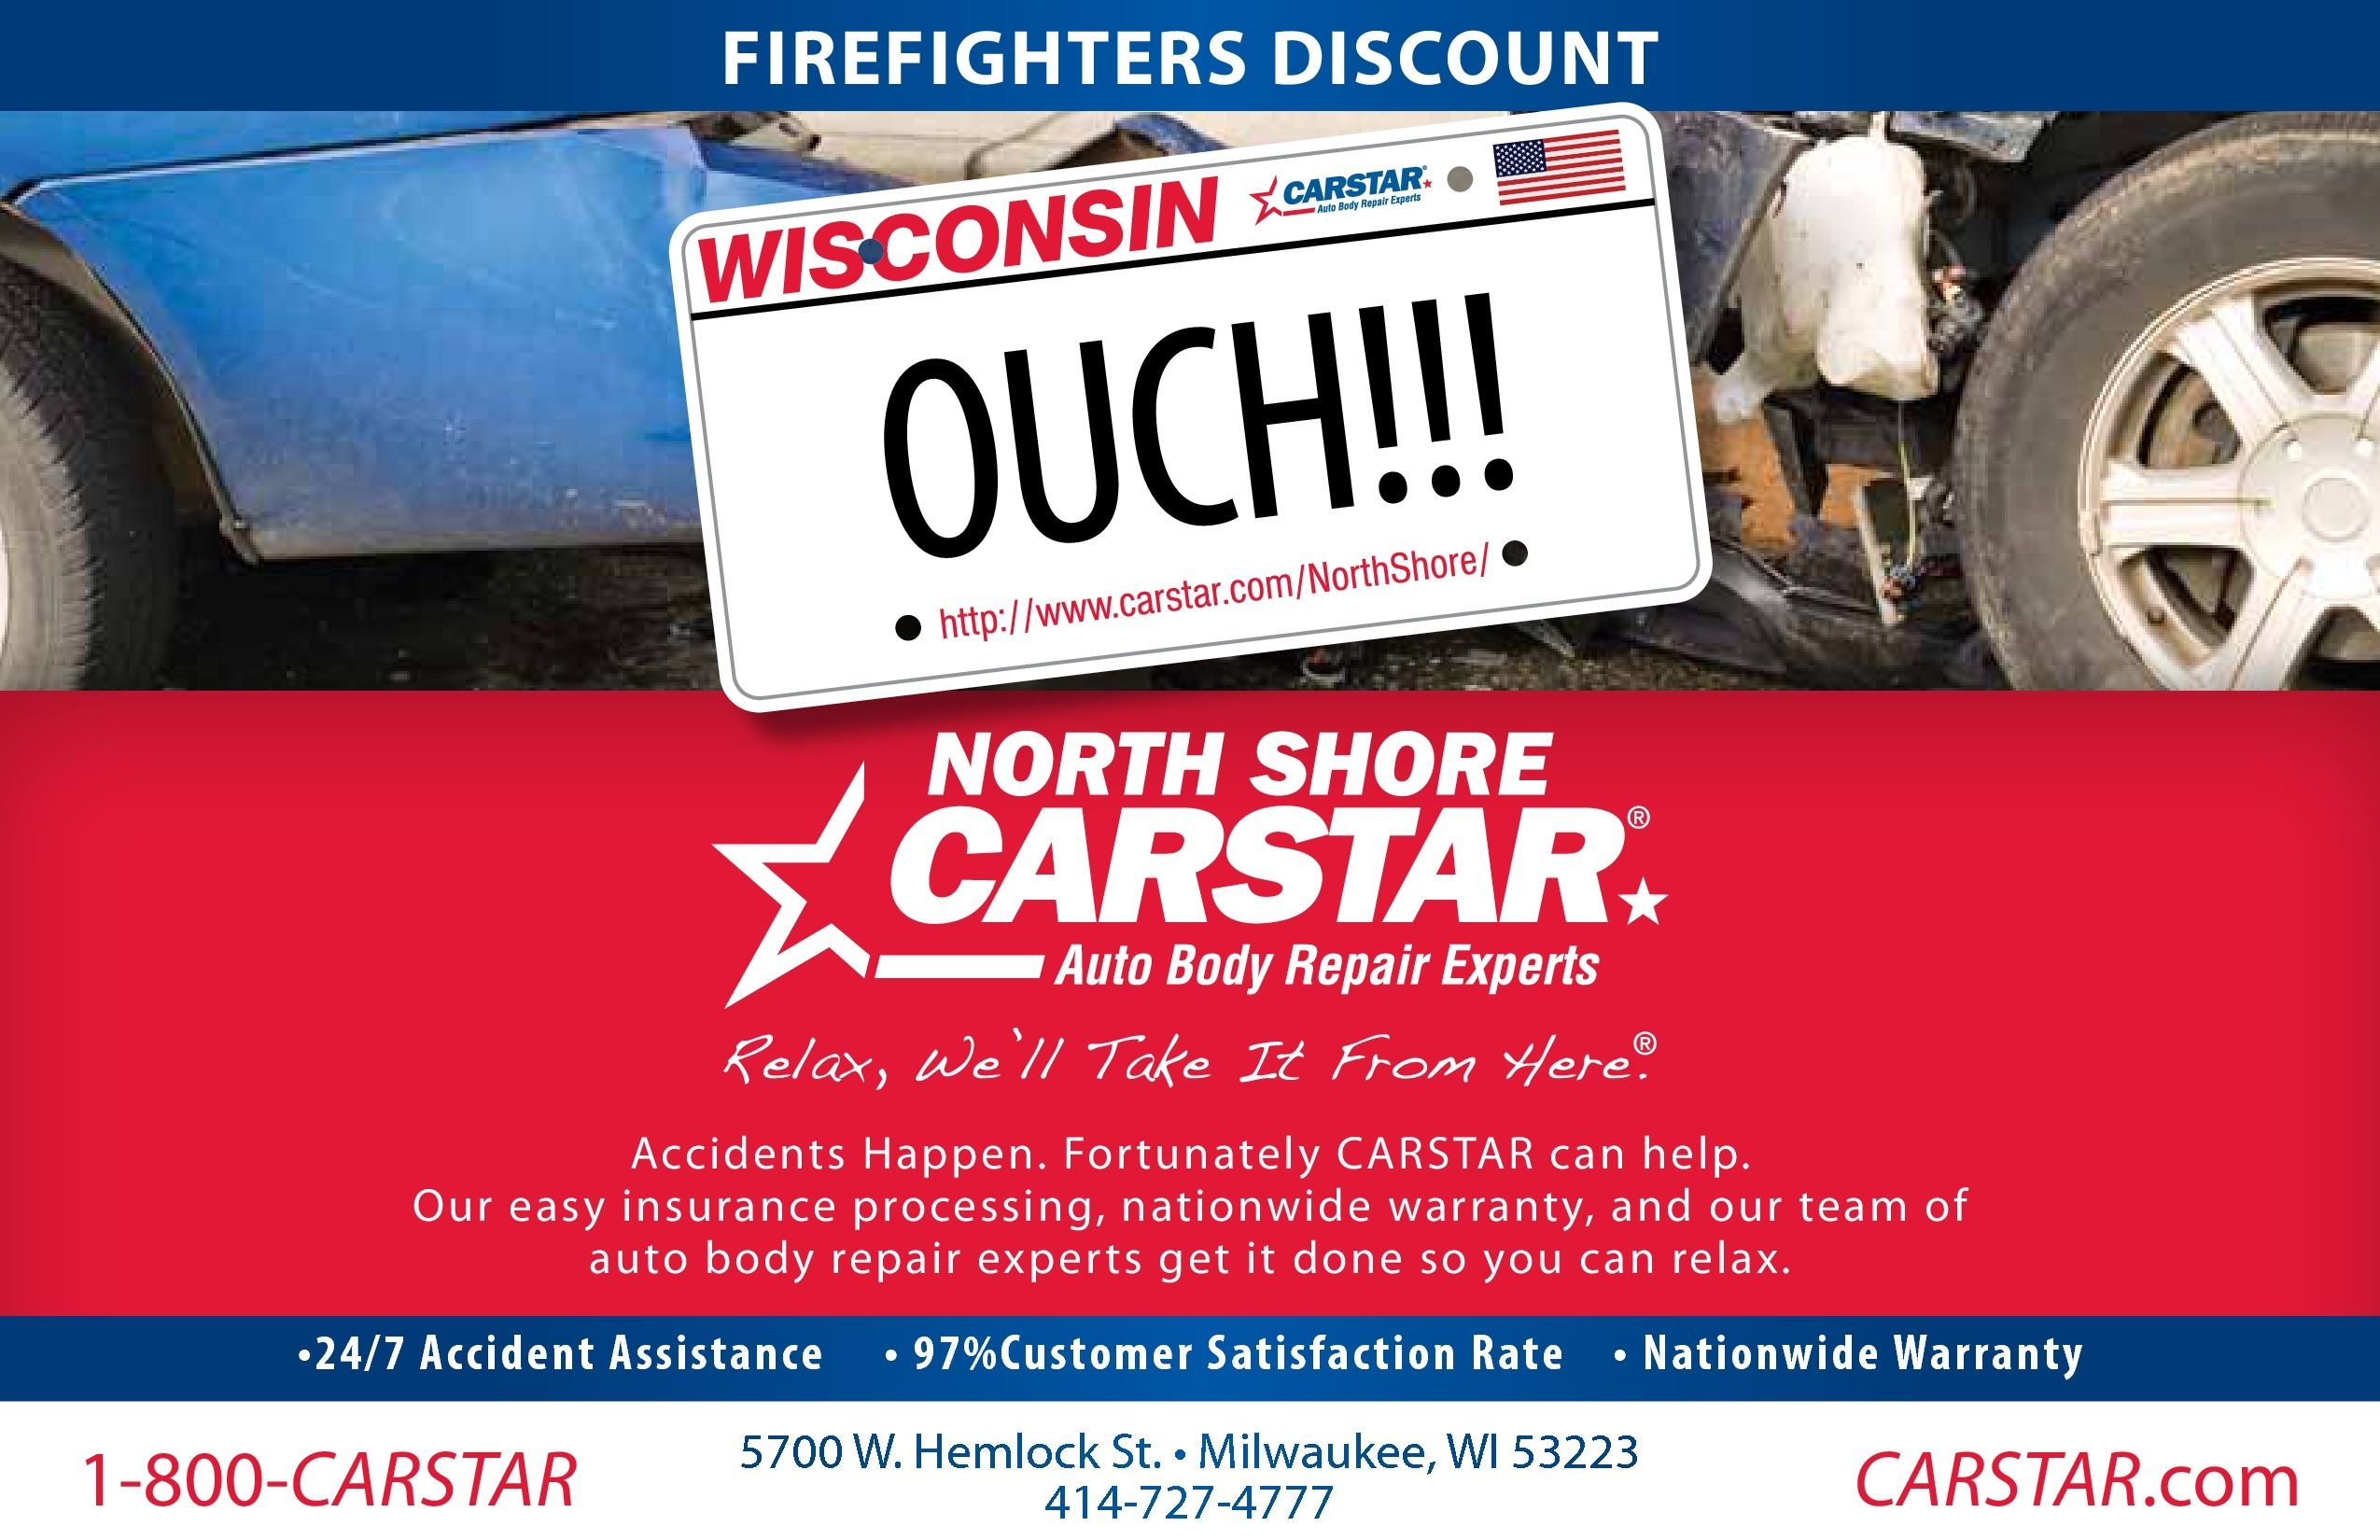 19 Best CARSTAR Ads Logos And Whatnot Images